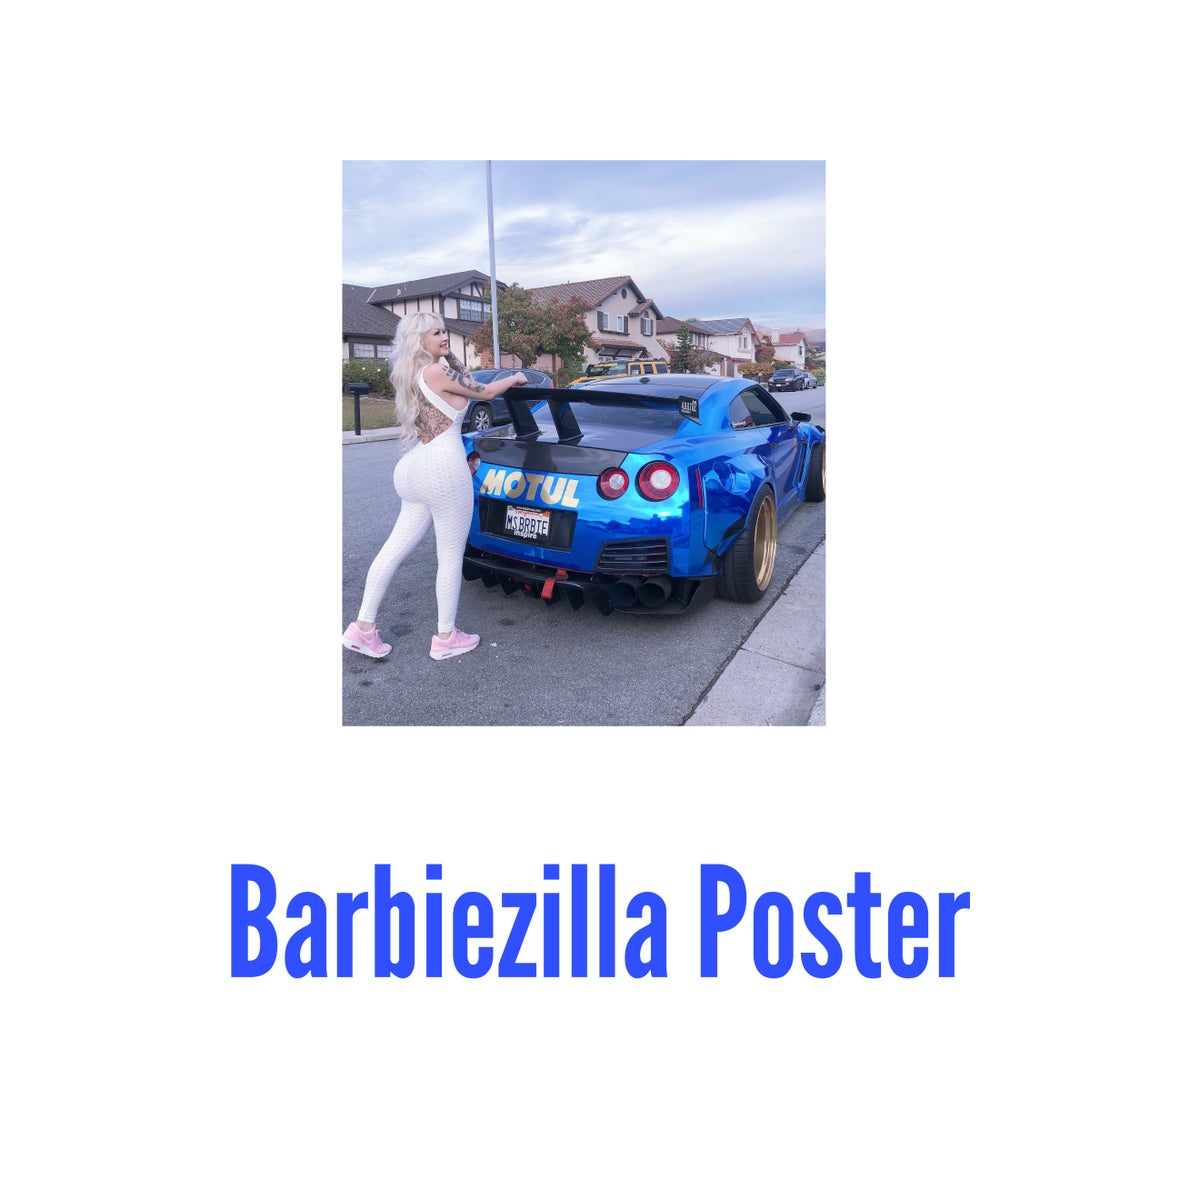 Image of Blue Barbiezilla Poster